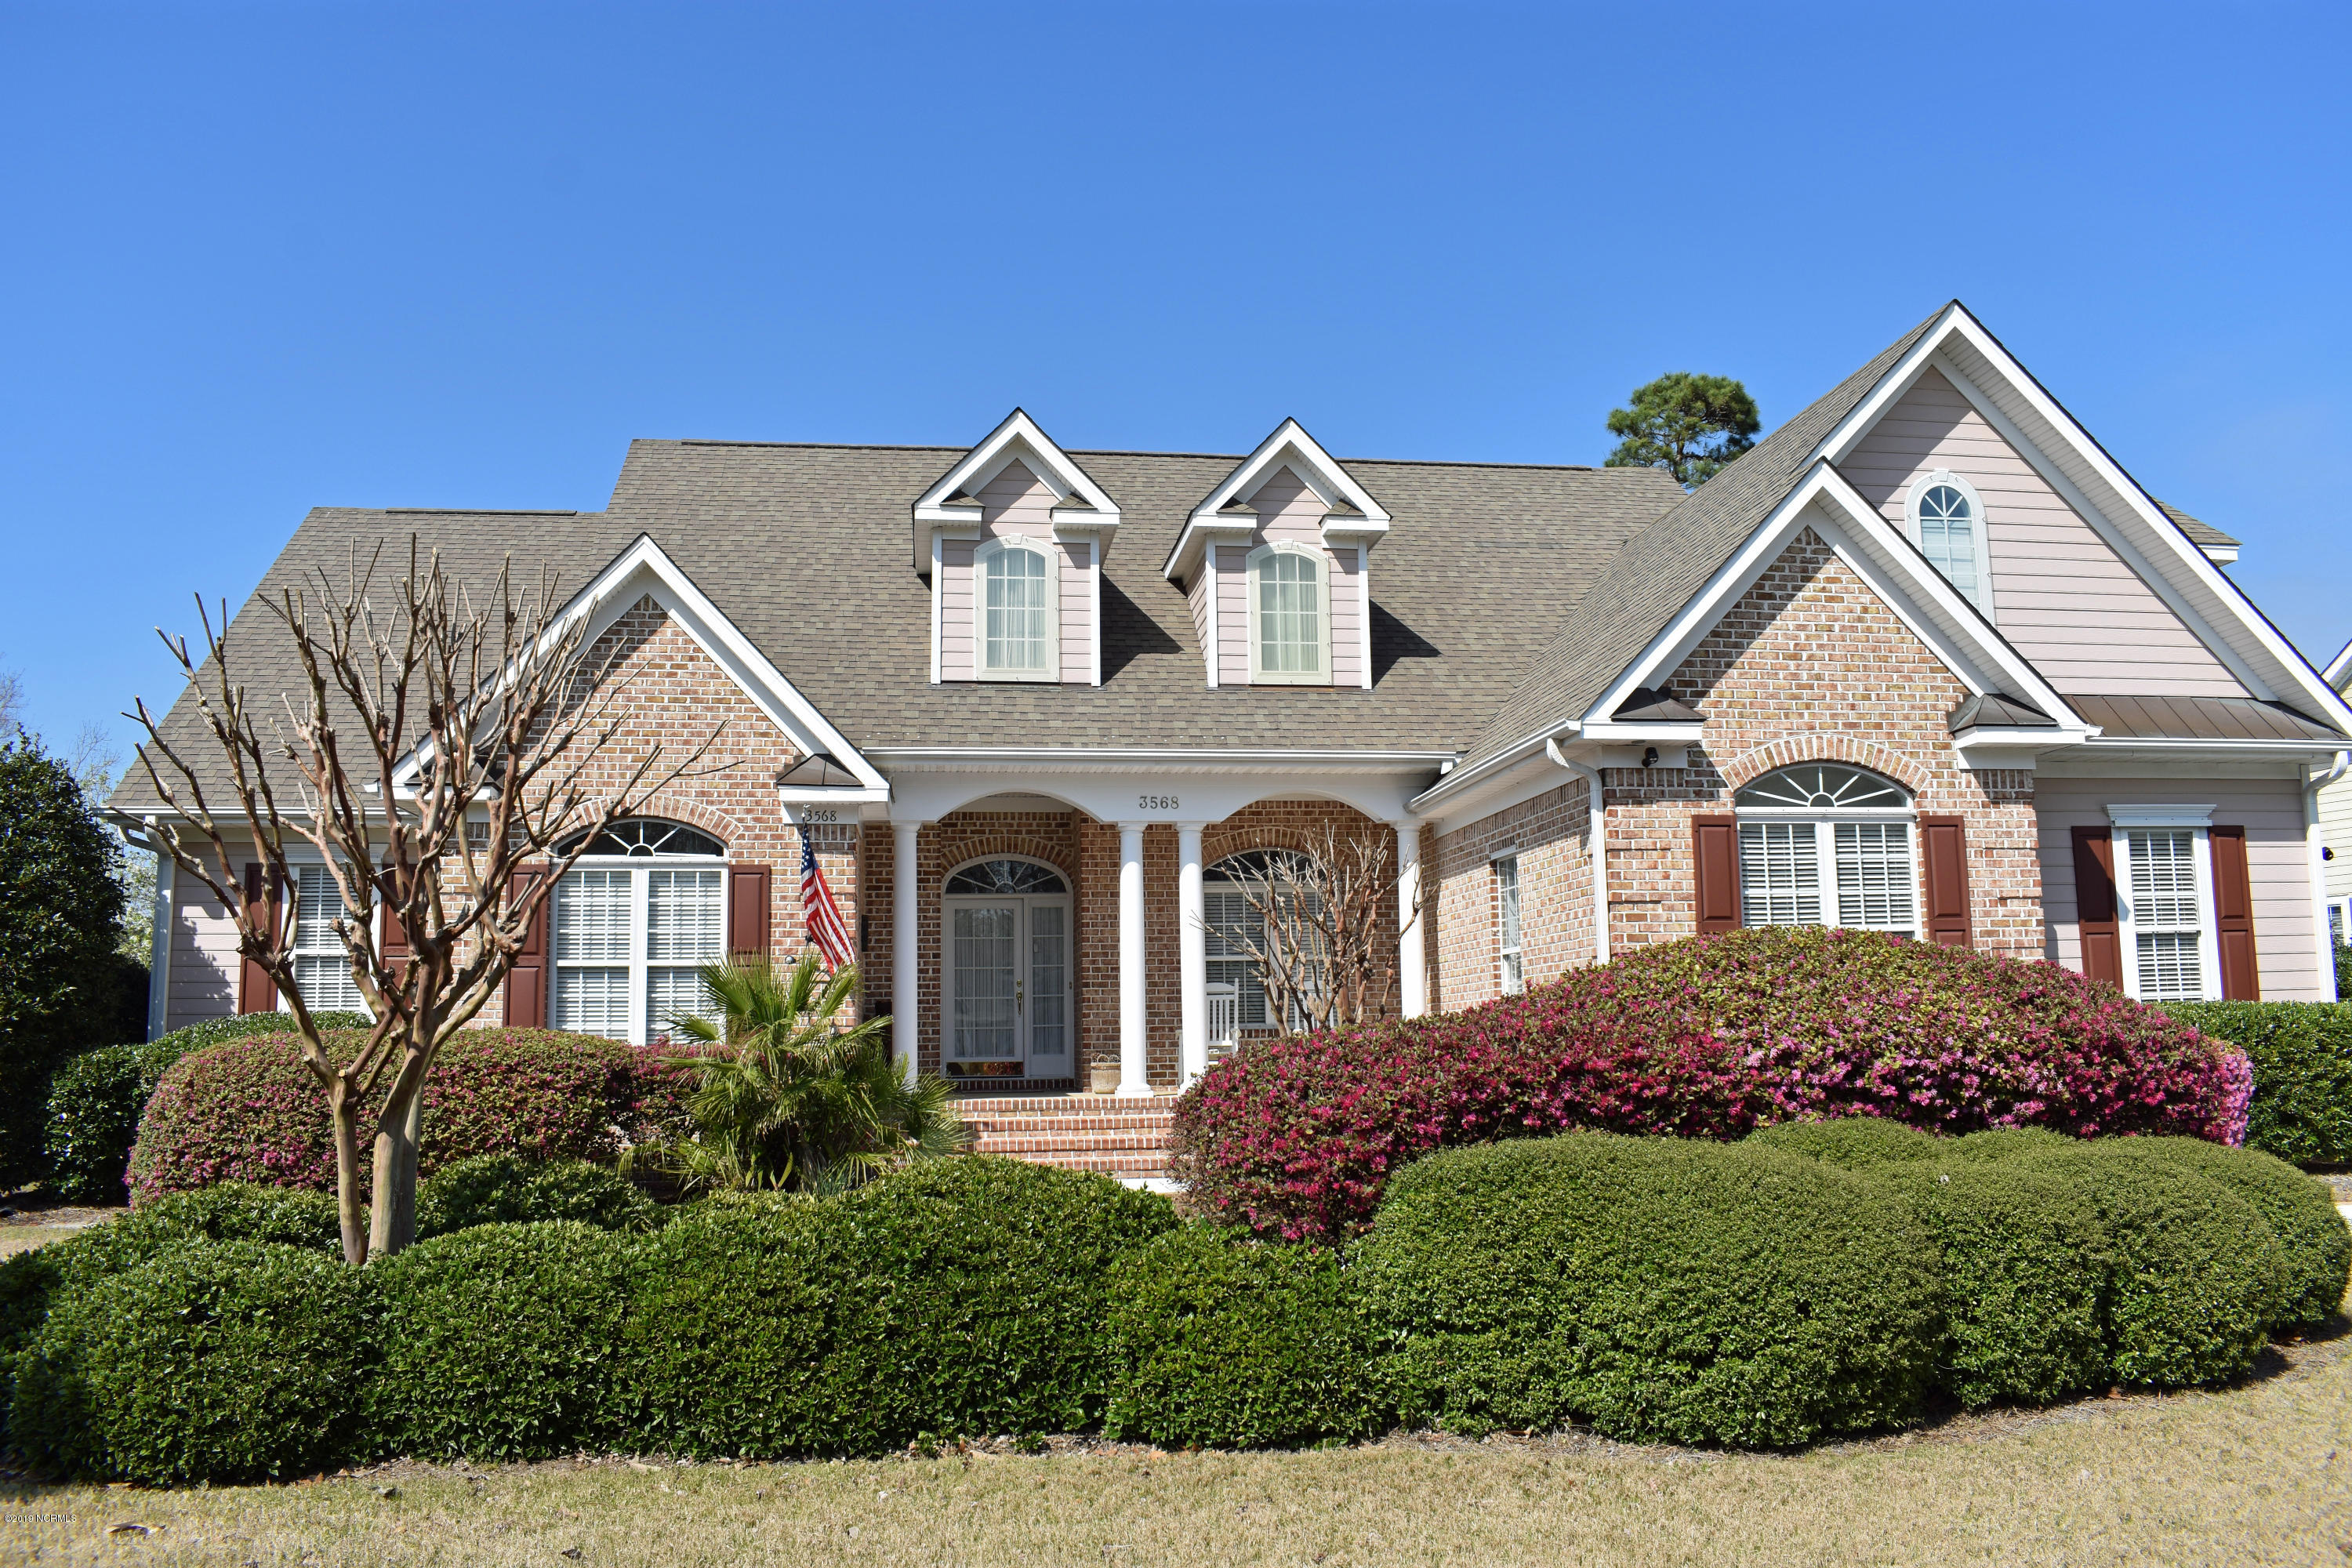 3568 E Medinah Avenue Southport, NC 28461